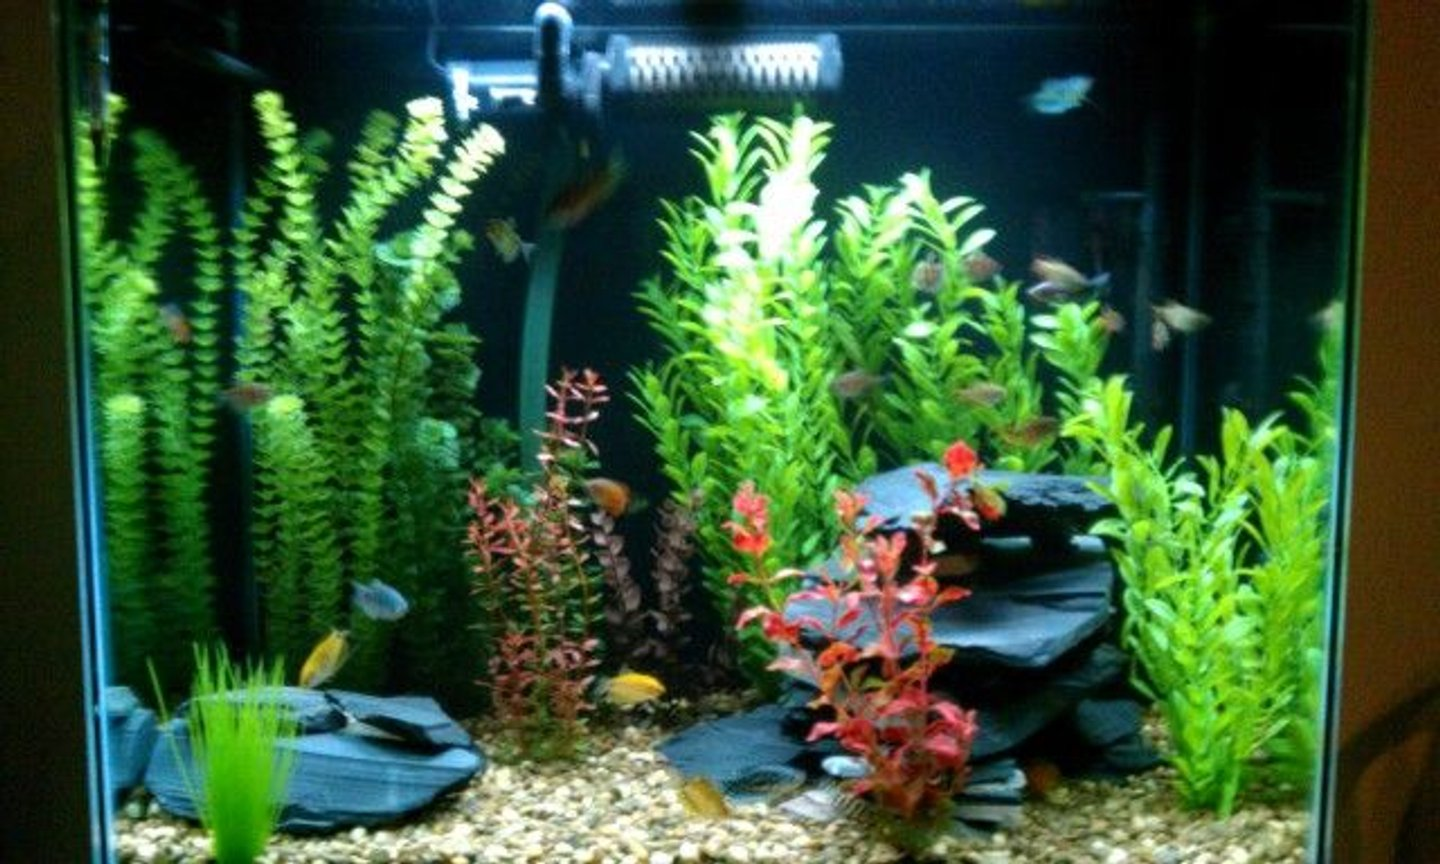 56 gallons freshwater fish tank (mostly fish and non-living decorations) - 56 gallon, coarse gravel, assorted artifical plants, 40lbs of black slate, 1 month fully stocked...